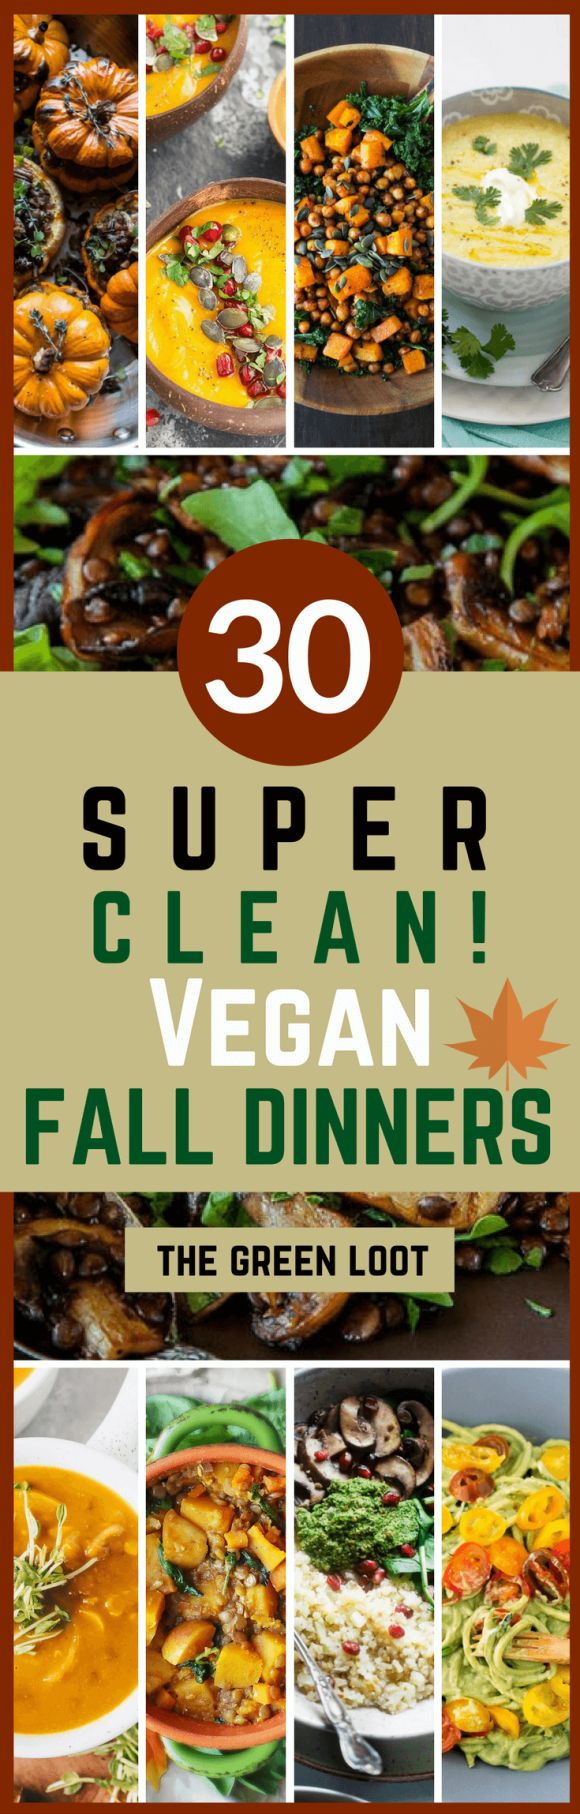 Vegan Clean Eating Fall Dinner Recipes (Healthy, gluten-free!)